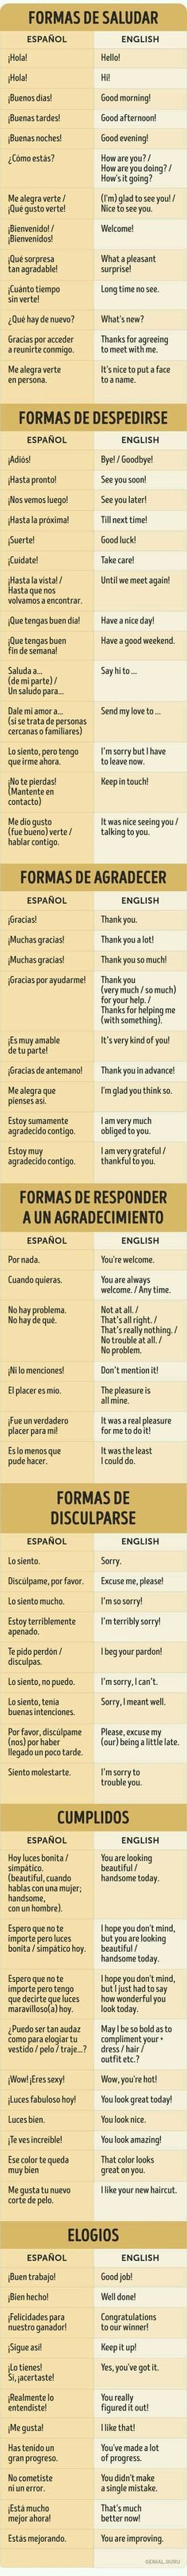 #saludos #ingles #learnspanishtips #SpanishLessons